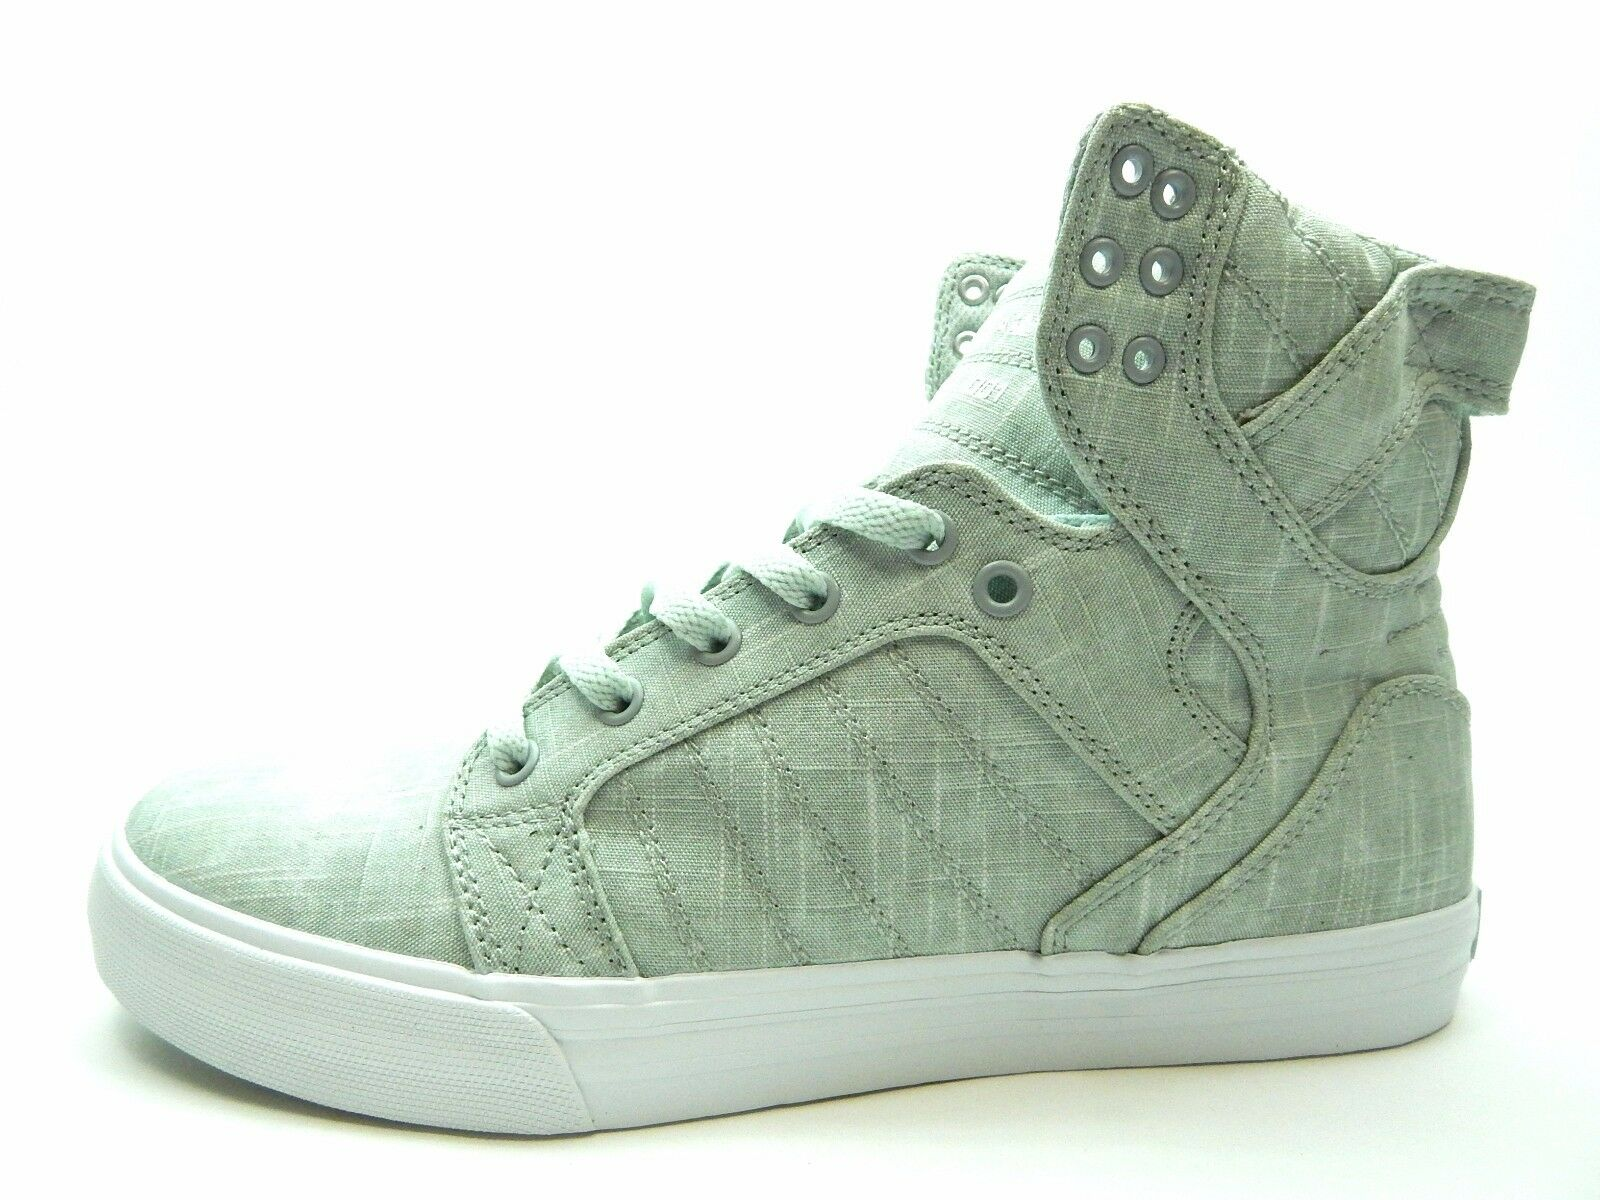 SUPRA SKYTOP WASHED GREY WHITE 08002-046-M MEN SHOES SIZE 8 TO 14